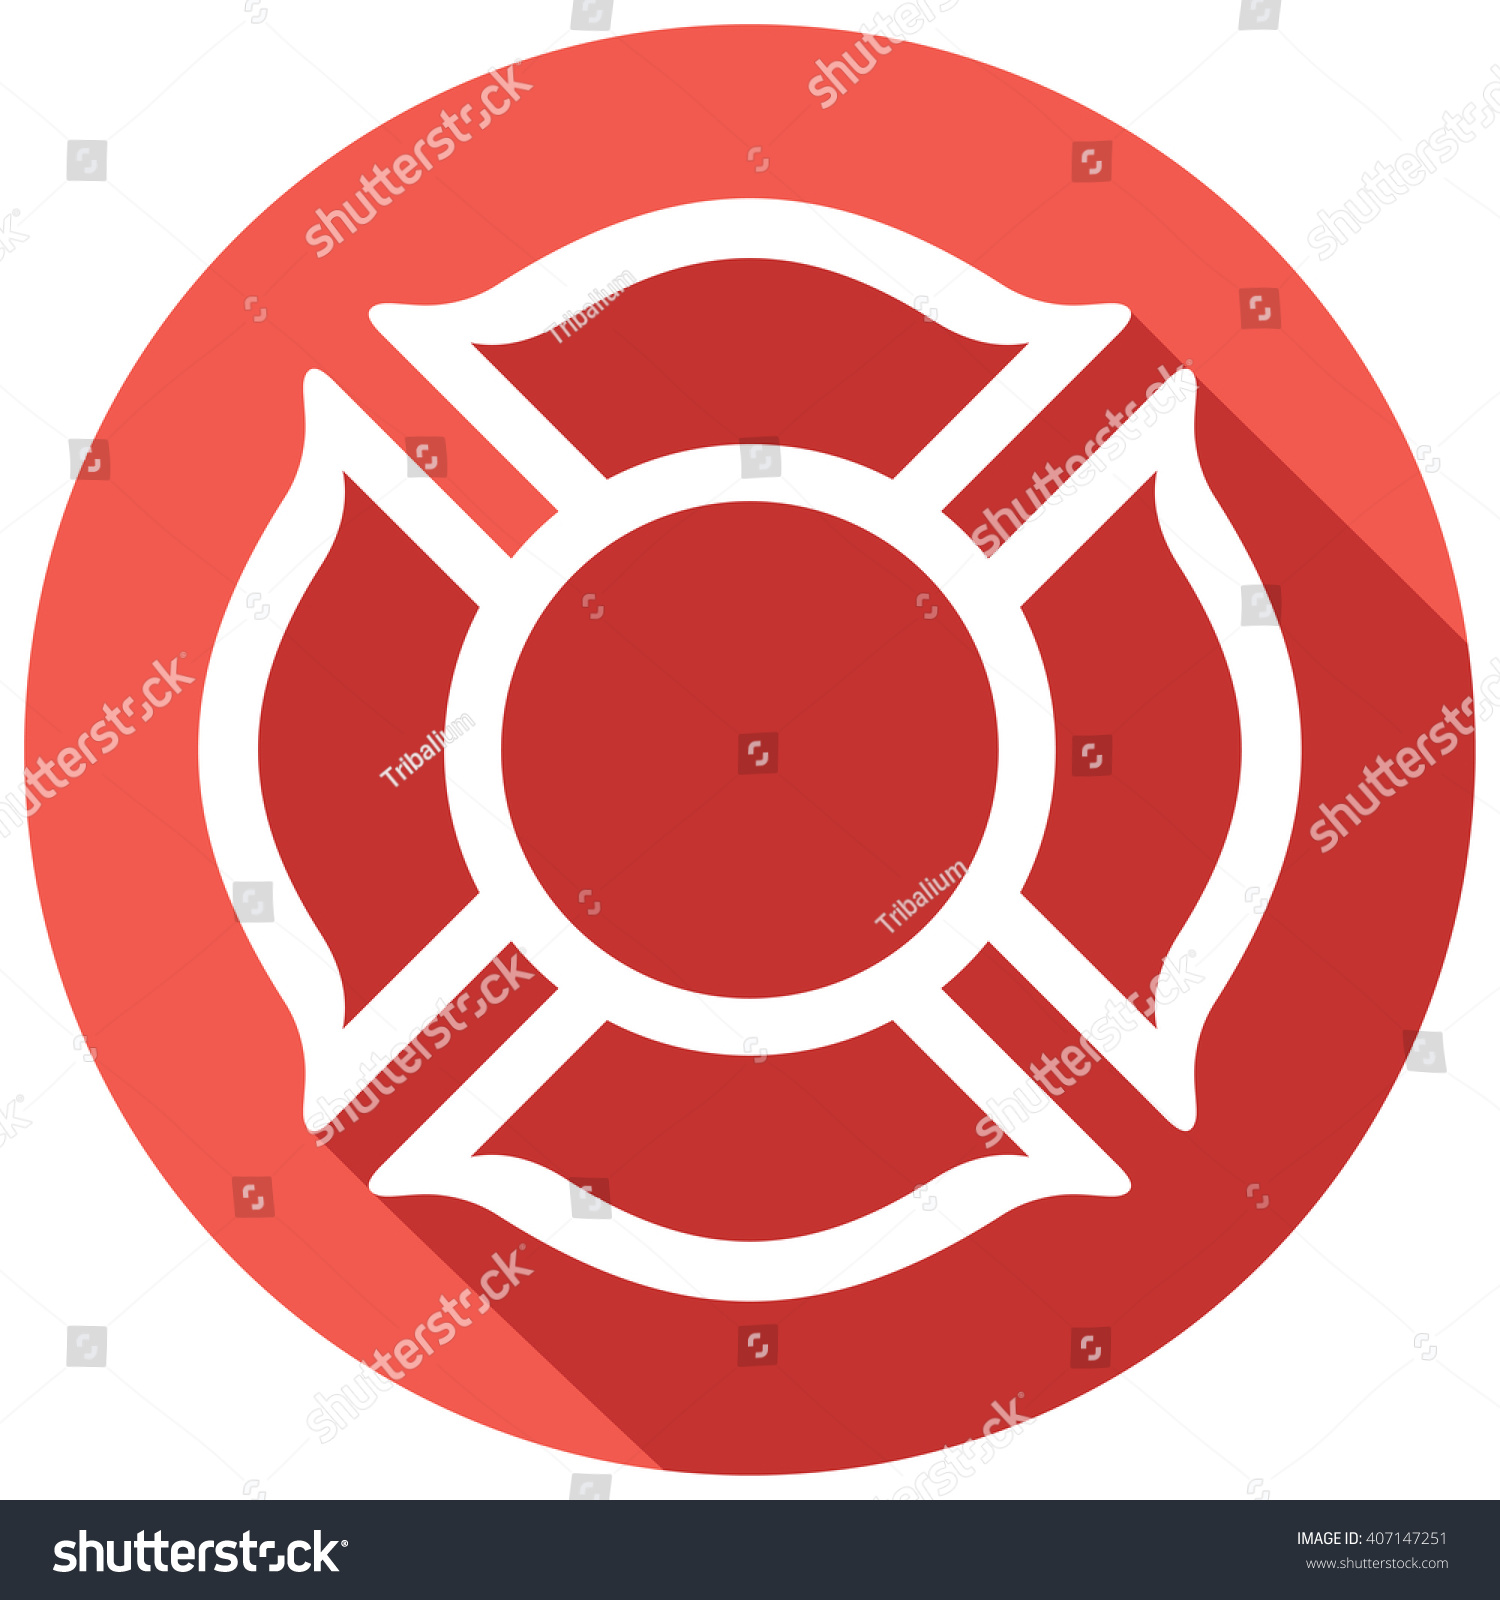 hight resolution of fire department or firefighters maltese cross symbol flat icon 407147251